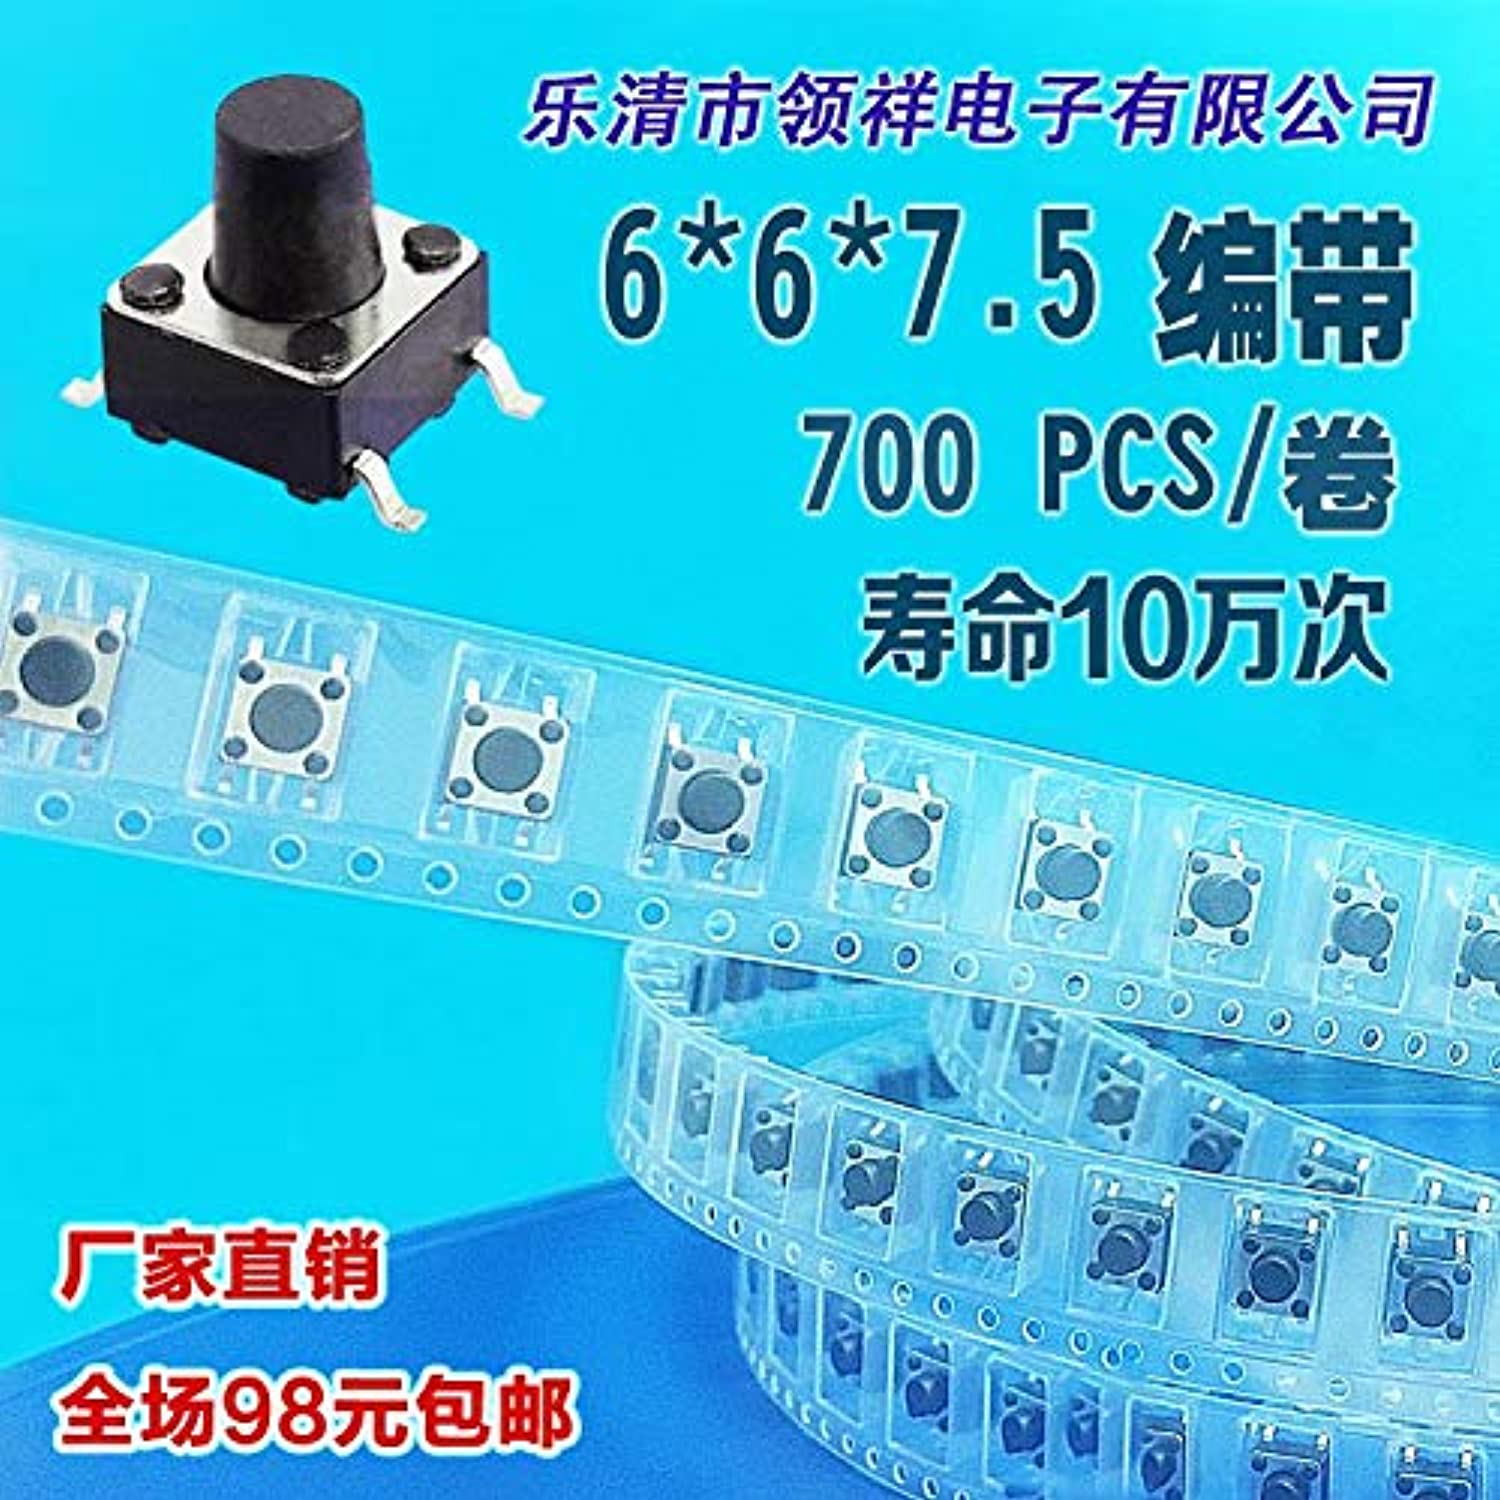 Taping 6  6  7.5MM Touch Switch SMD 4 feet Legs SMD Button Switch Panel Mounted 6x6